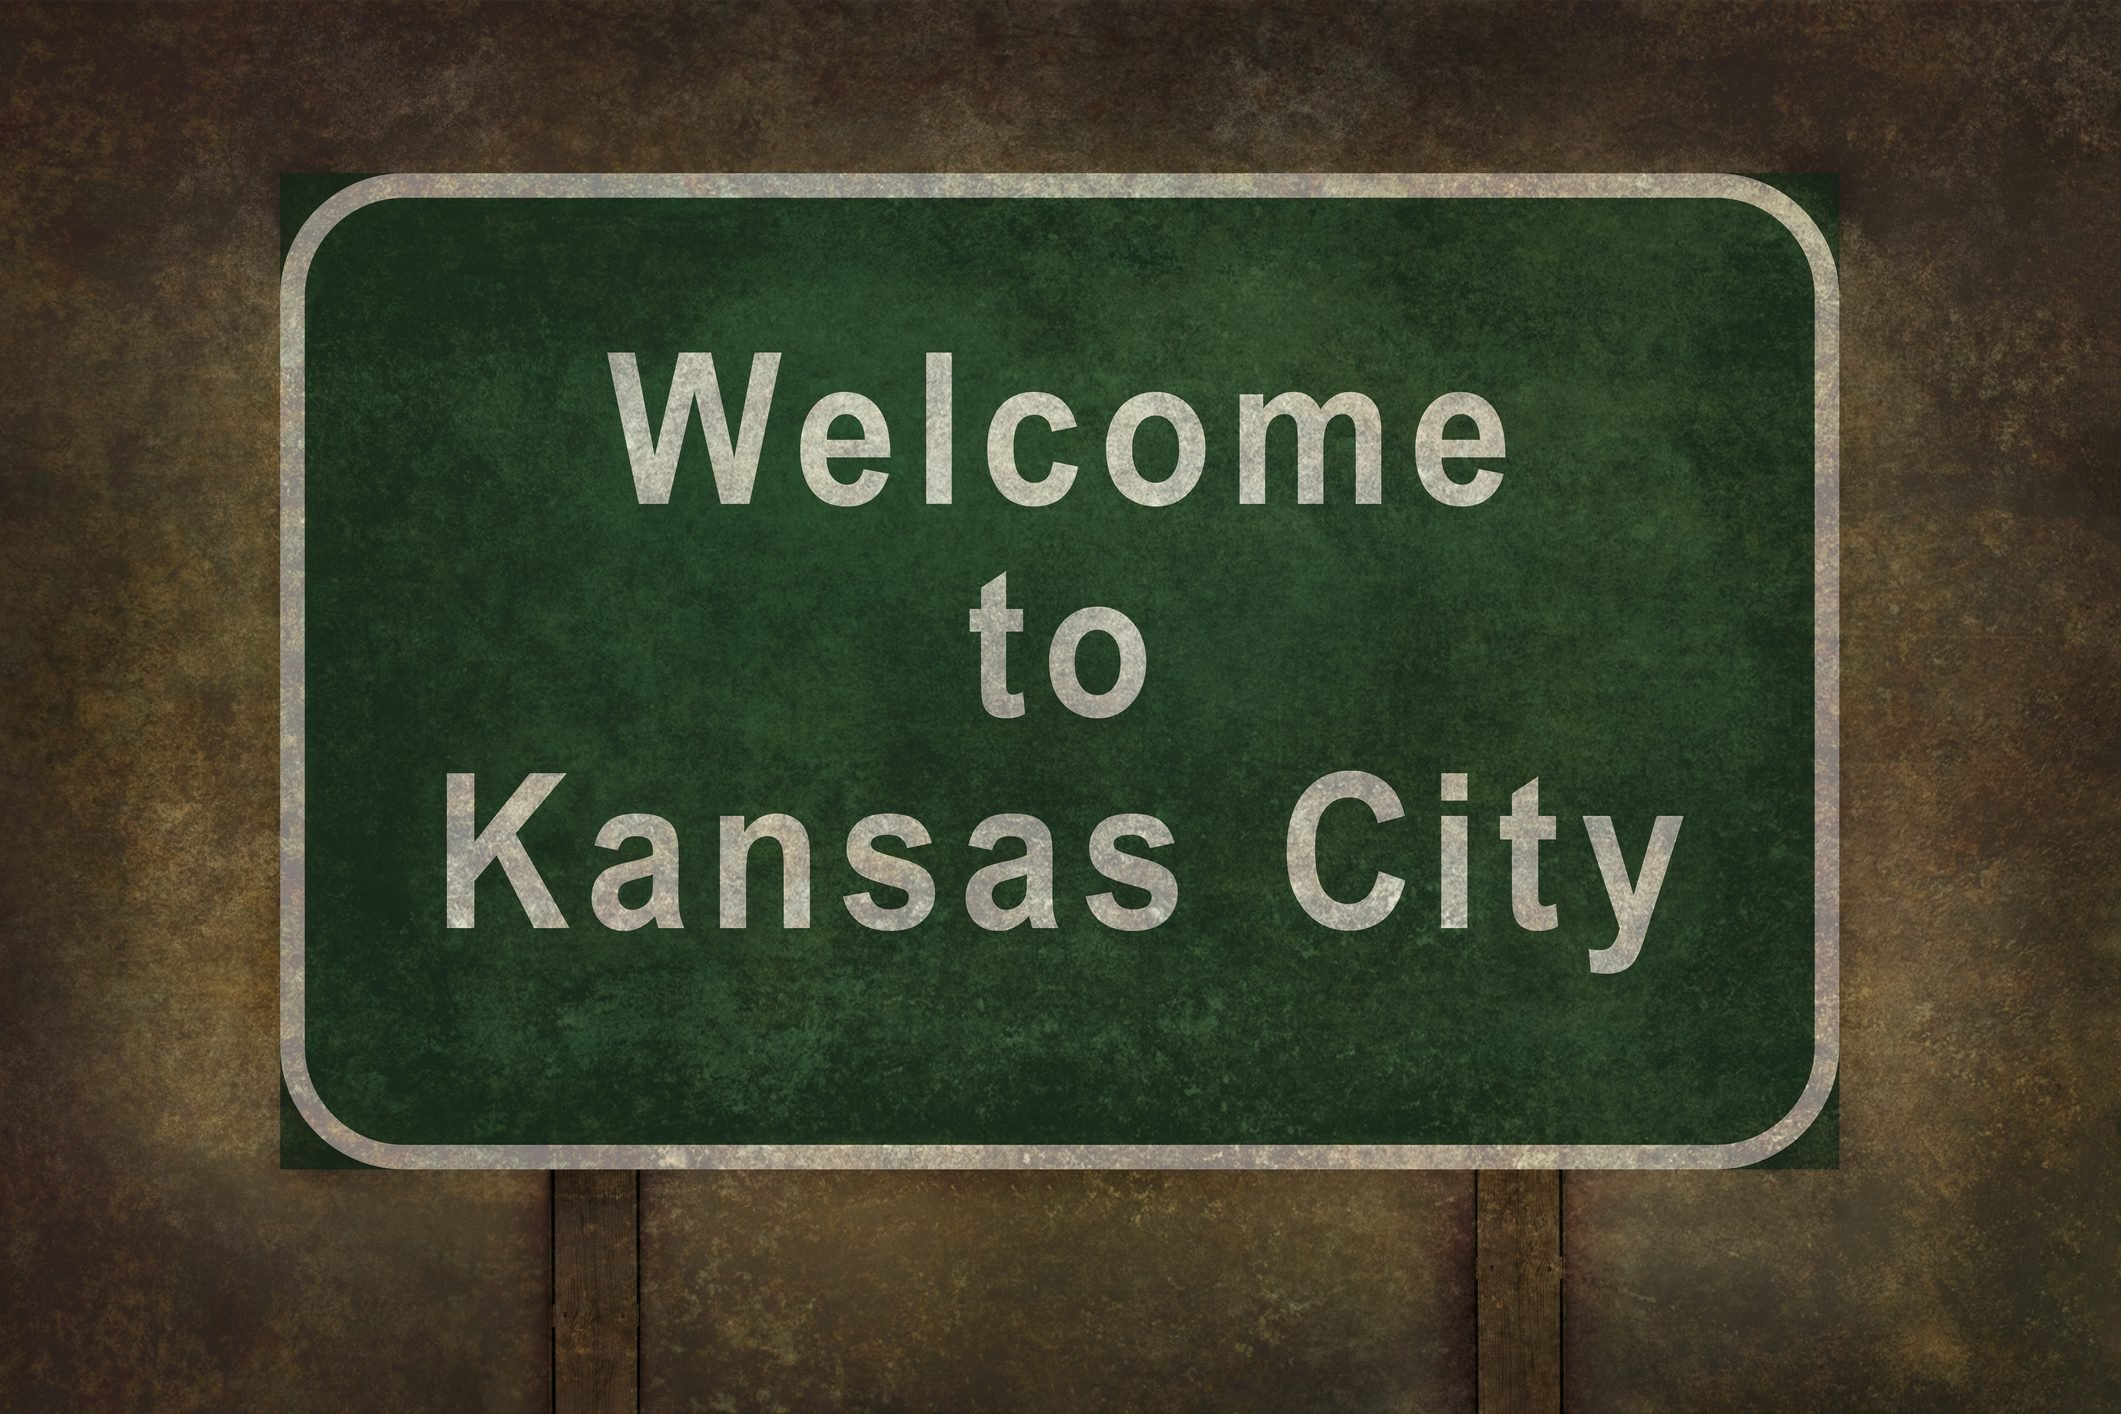 Welcome to Kansas City roadside sign illustration